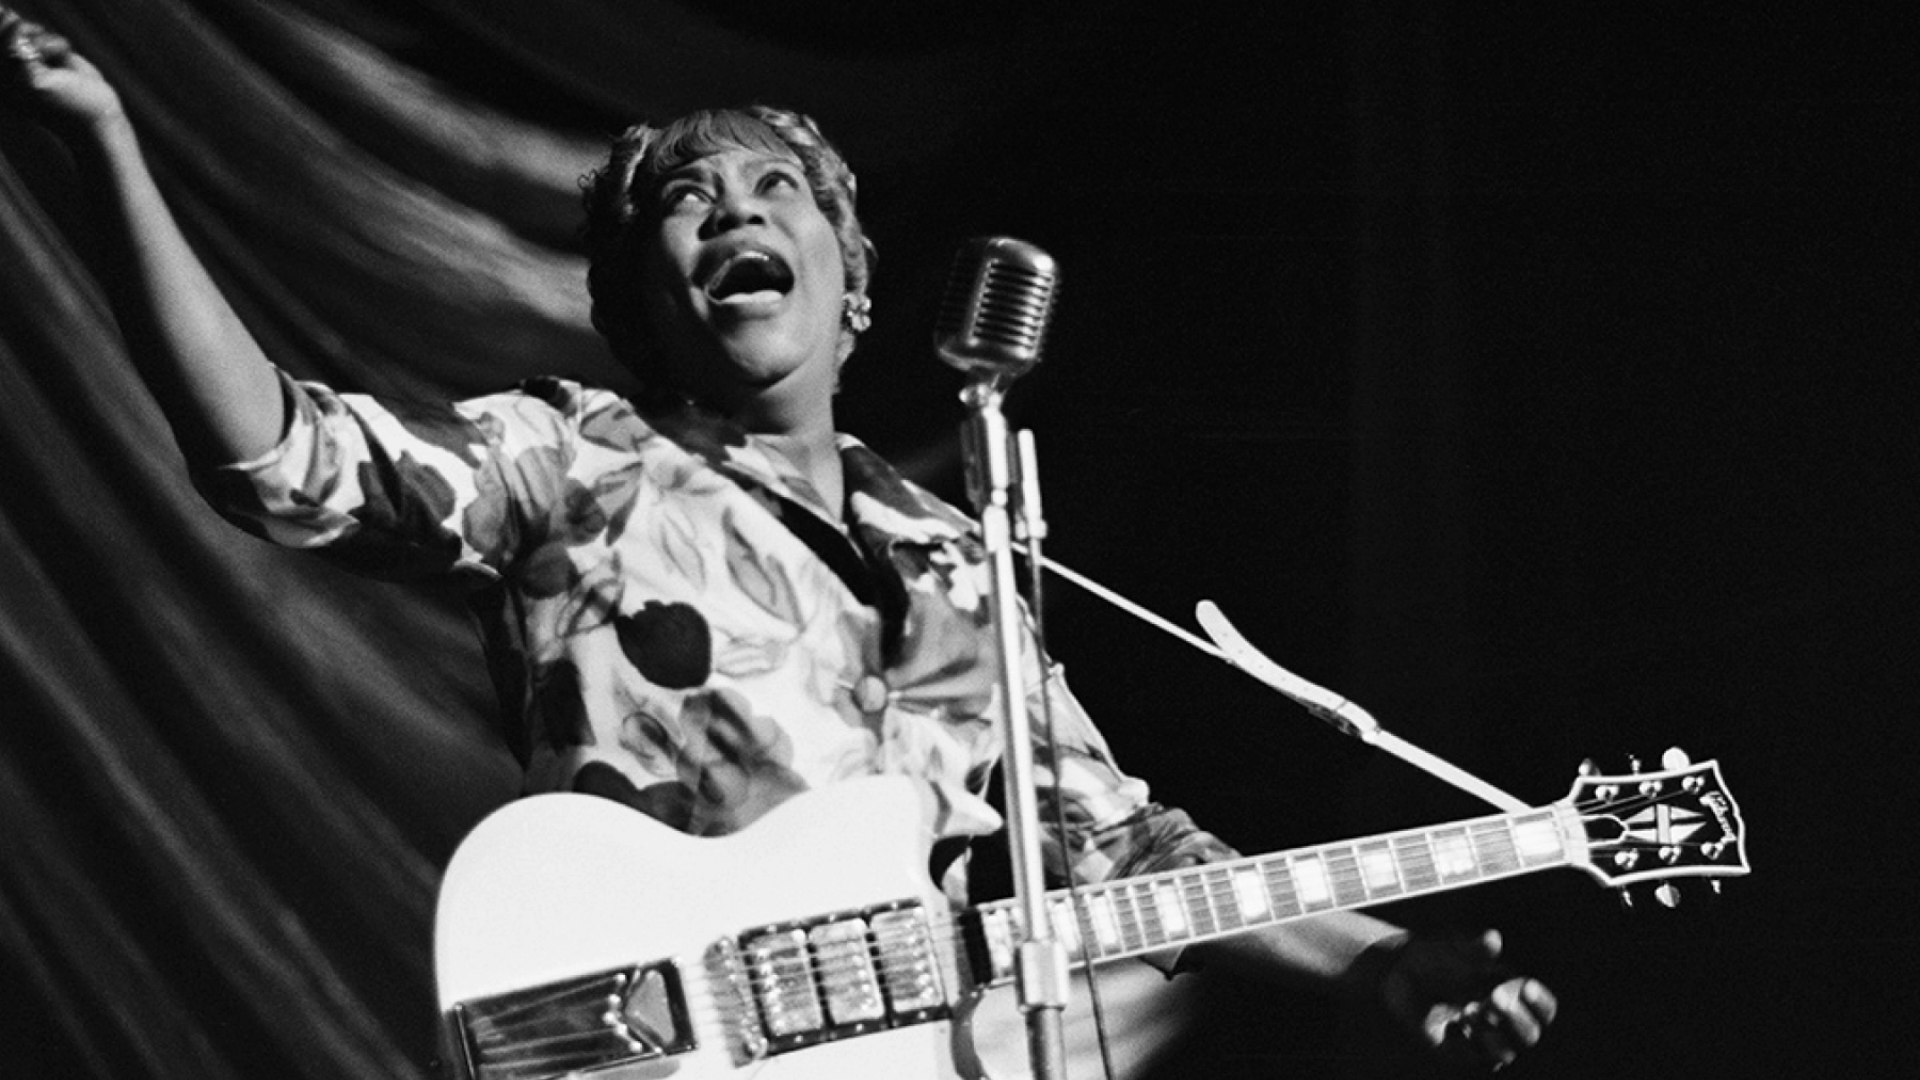 Old black and white photo of Sister Rosetta Tharpe, on stage with a guitar, singing into a microphone.